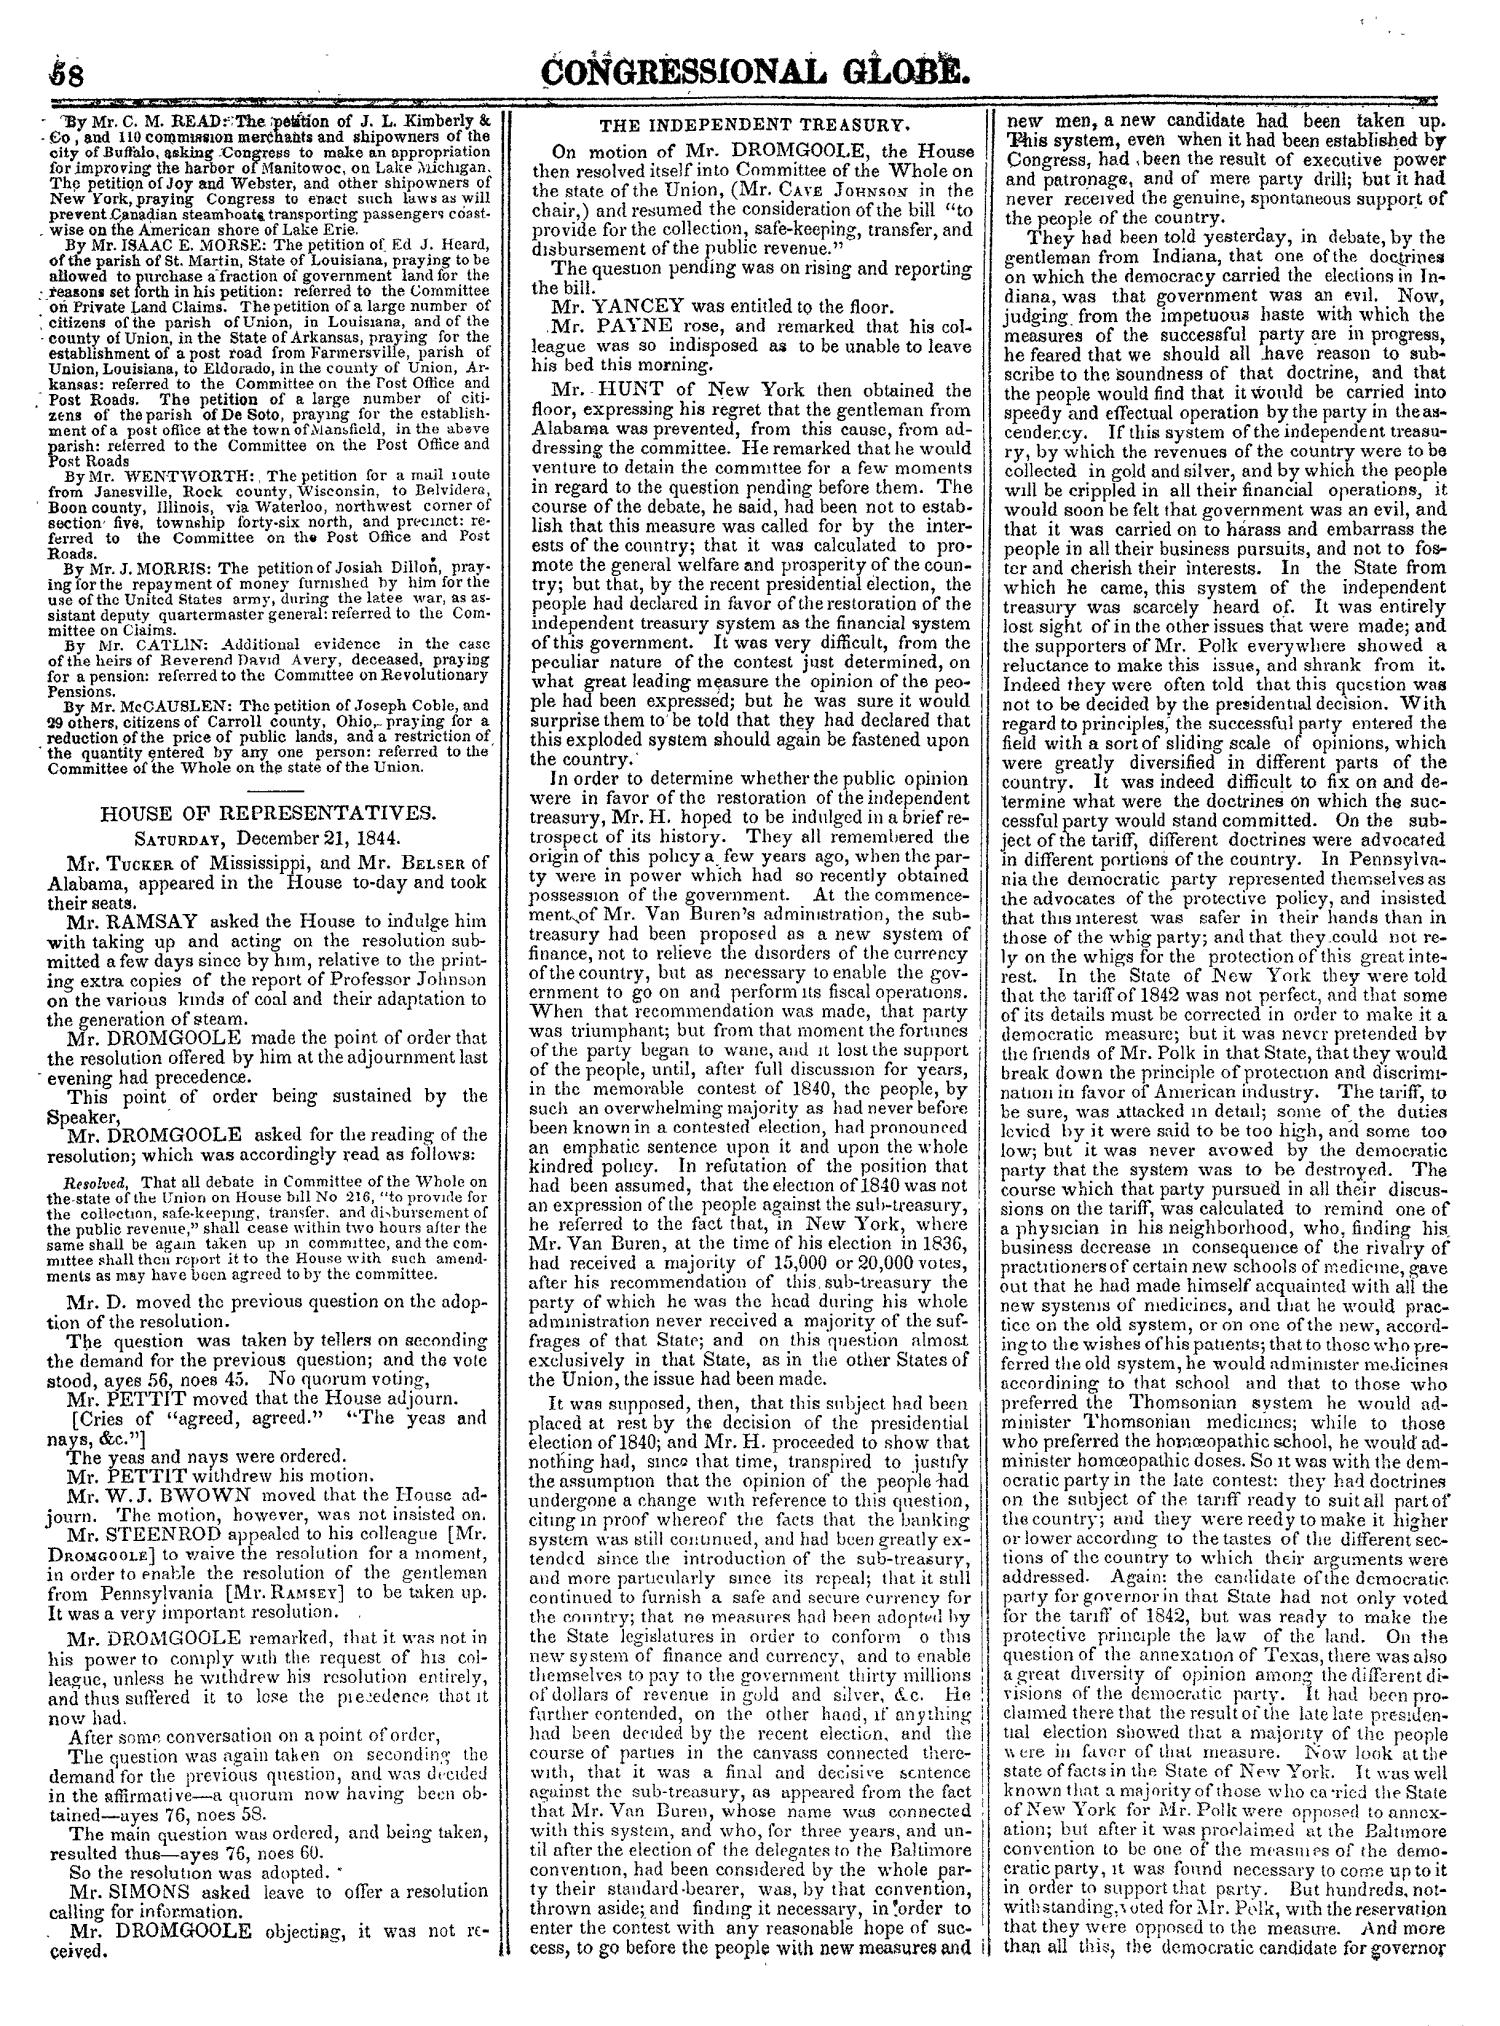 The Congressional Globe, Volume 14: Twenty-Eighth Congress, Second Session                                                                                                      58